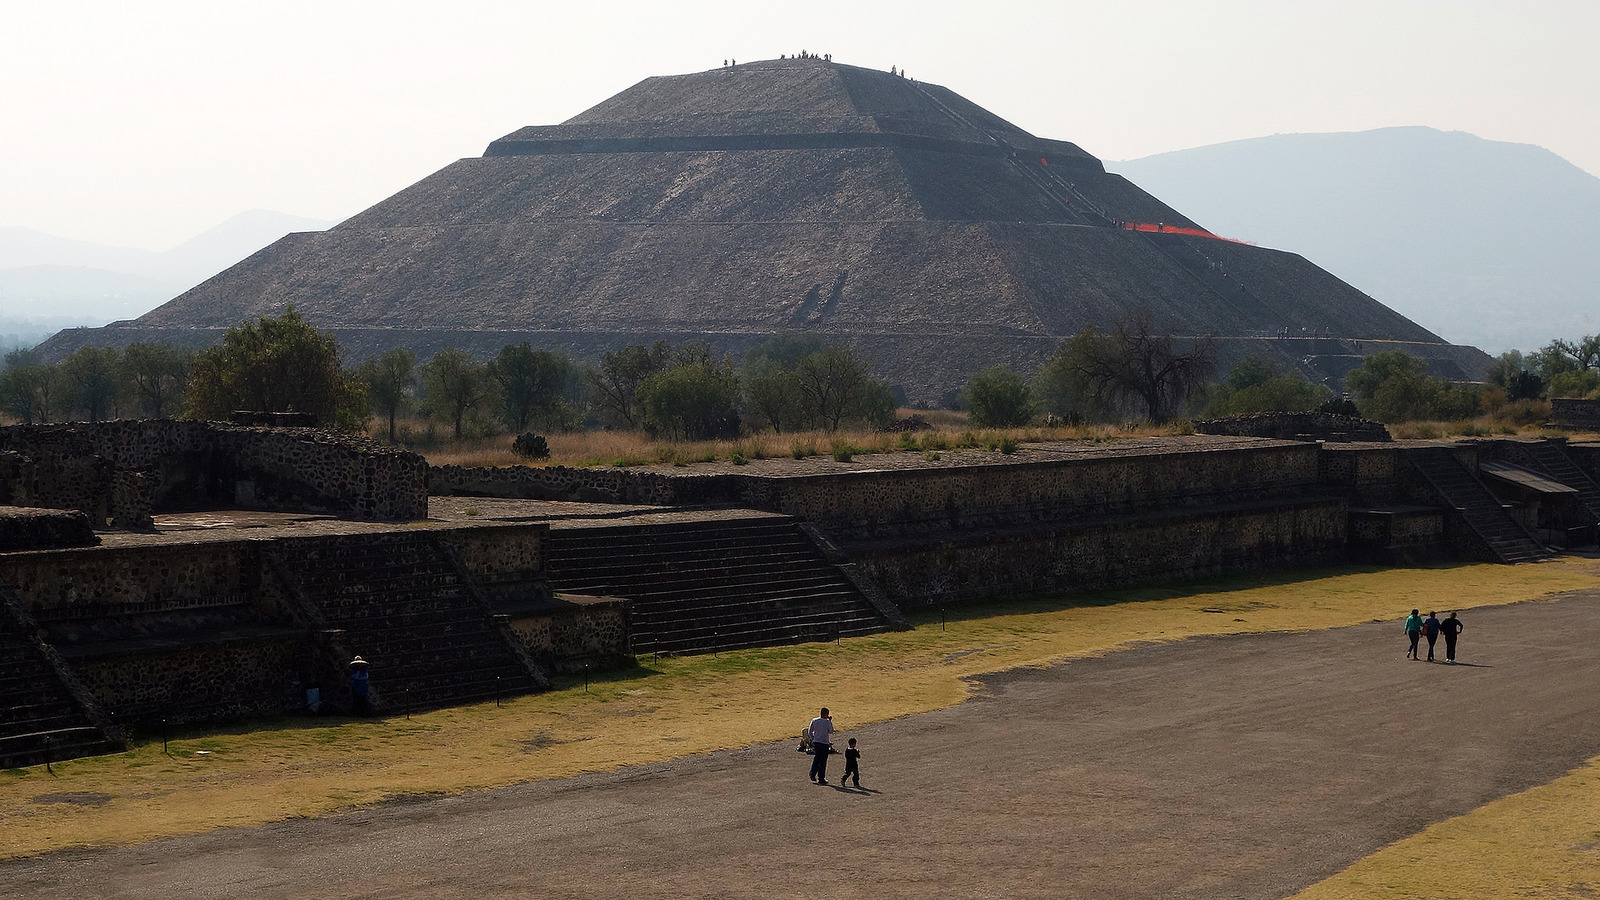 Pyramid of the Sun and the Avenue of the Dead, Teōtīhuacān